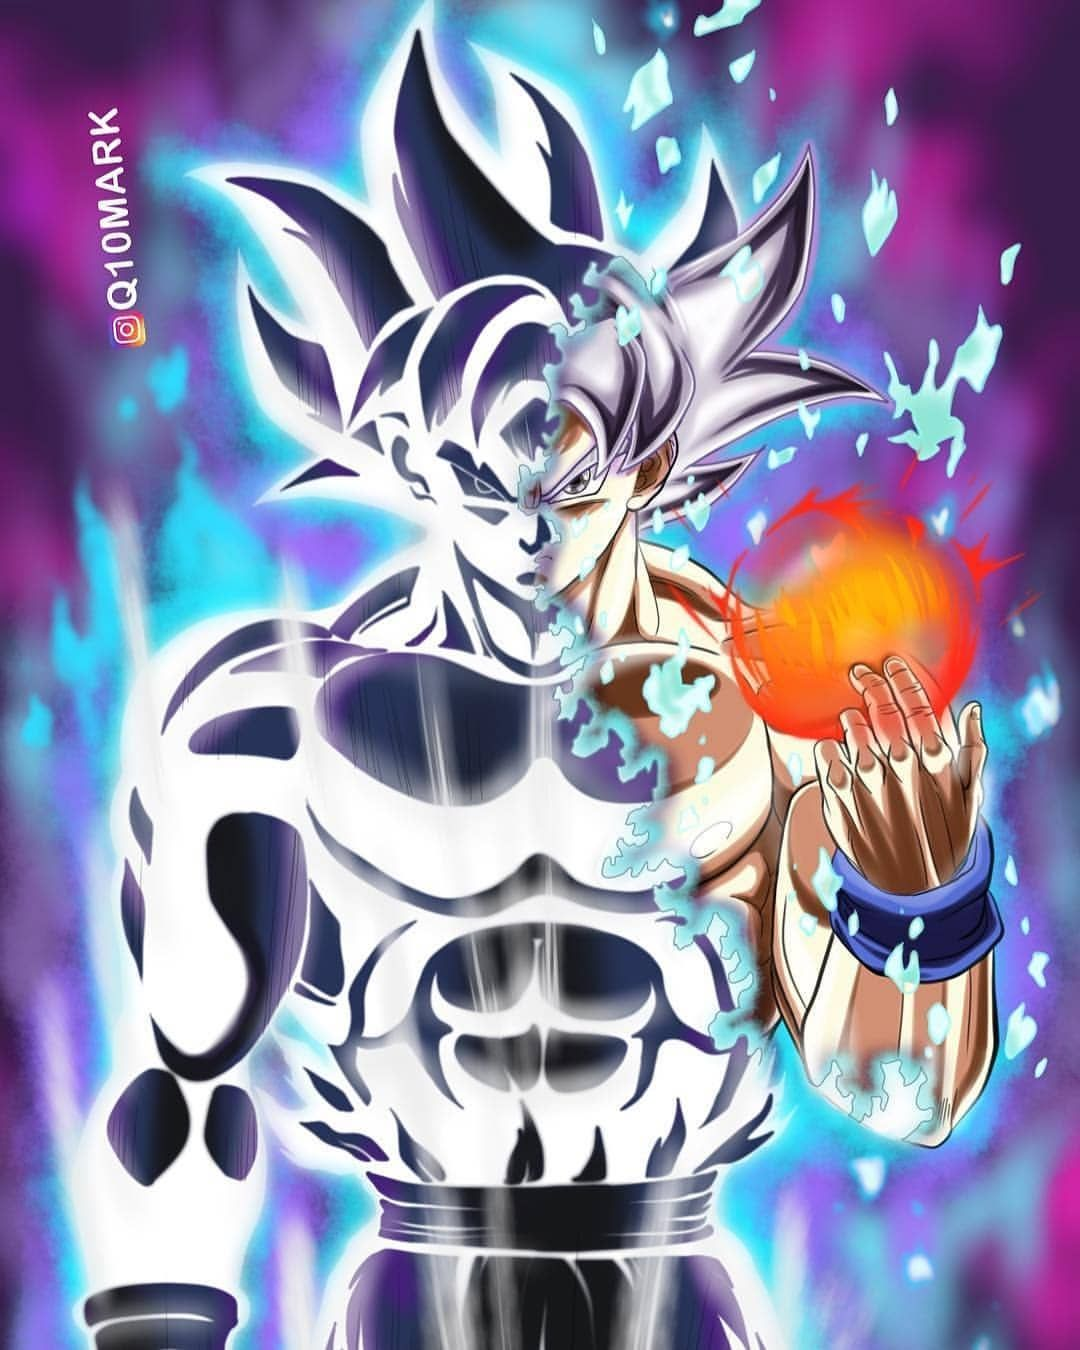 Goku Ultra Instinct Mastered Featuring His Debut When The Main